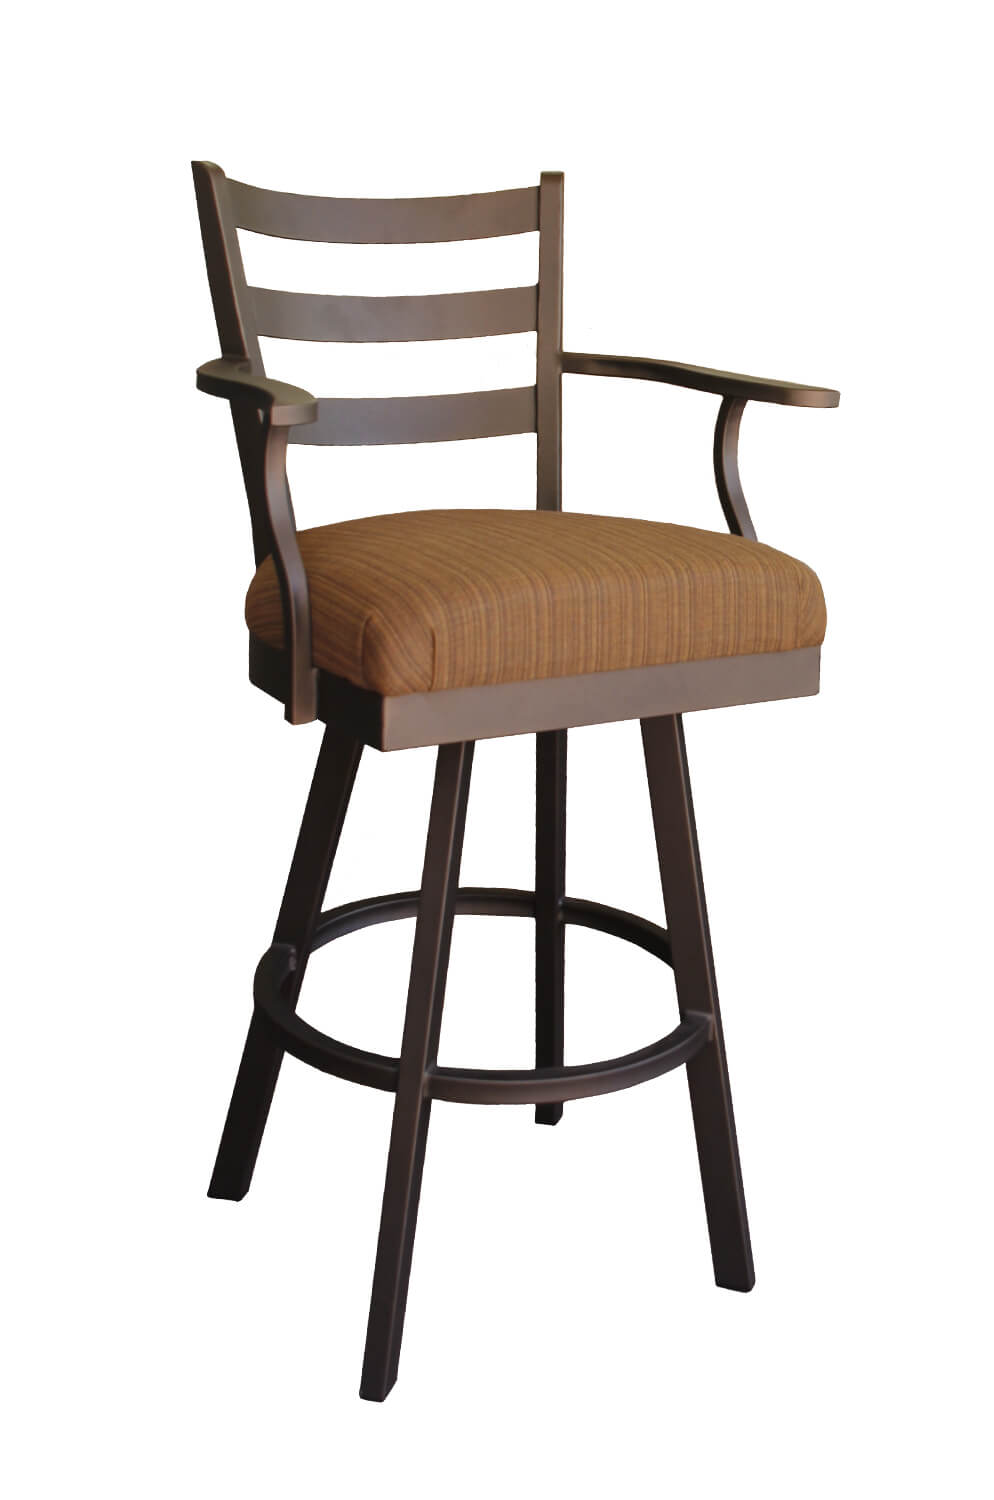 Outstanding Outdoor Swivel Bar Stools With Back And Arms Home Ideas Home Interior And Landscaping Spoatsignezvosmurscom